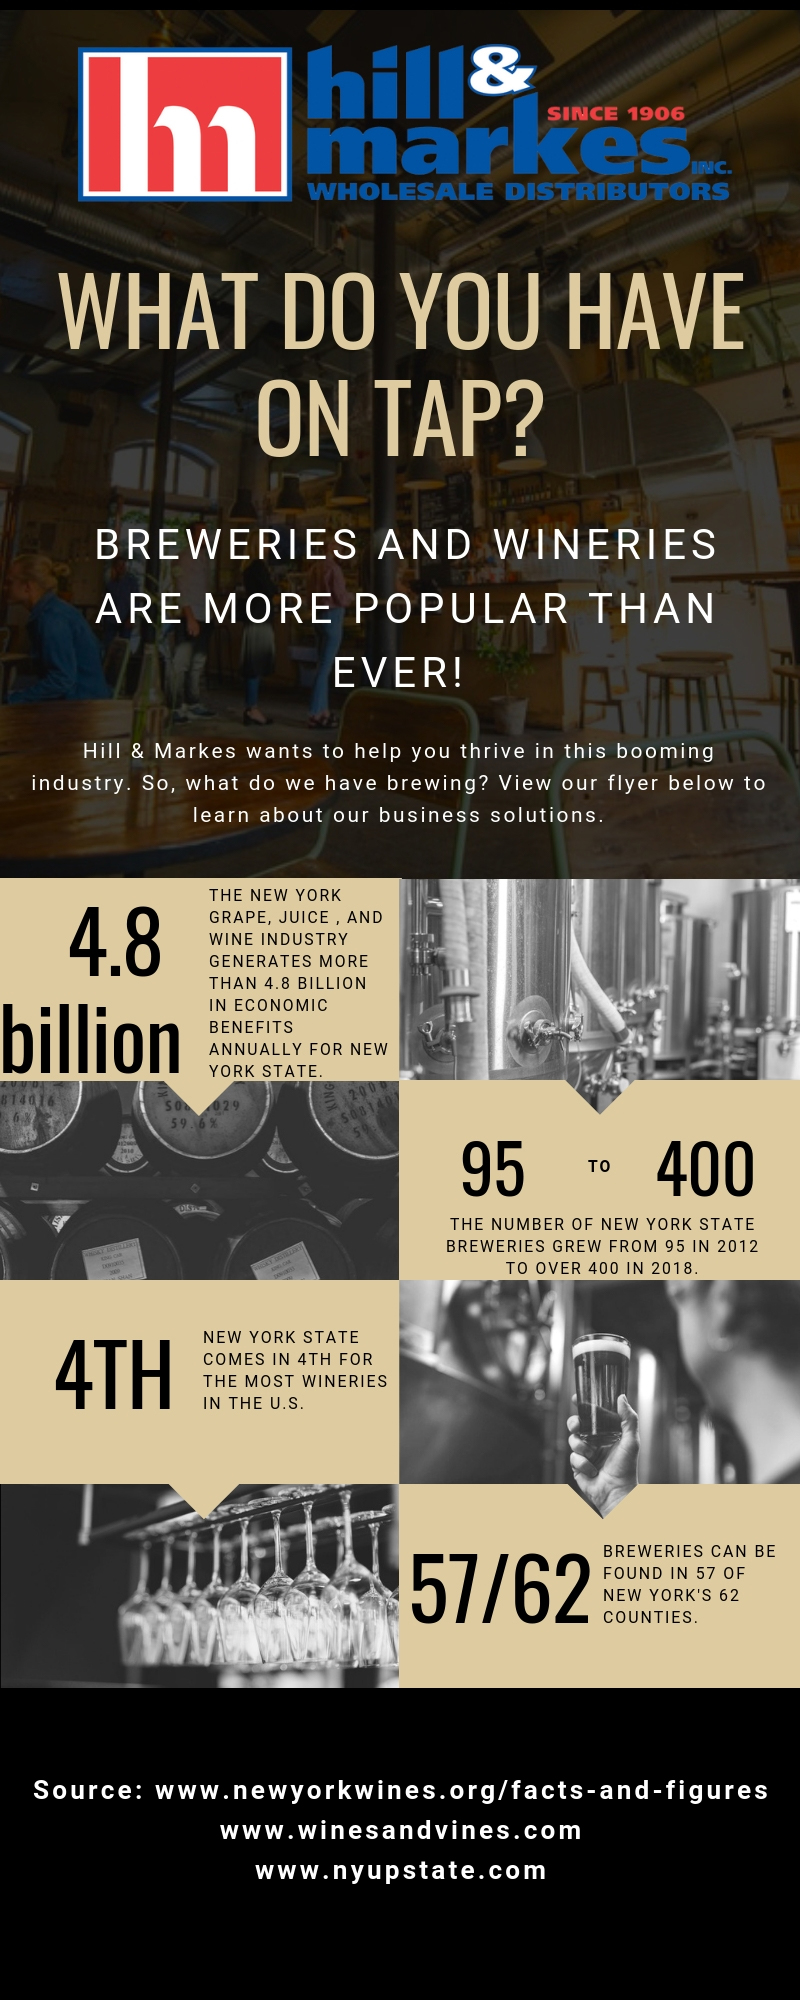 Hill & Markes Brewery & Winery Flyer